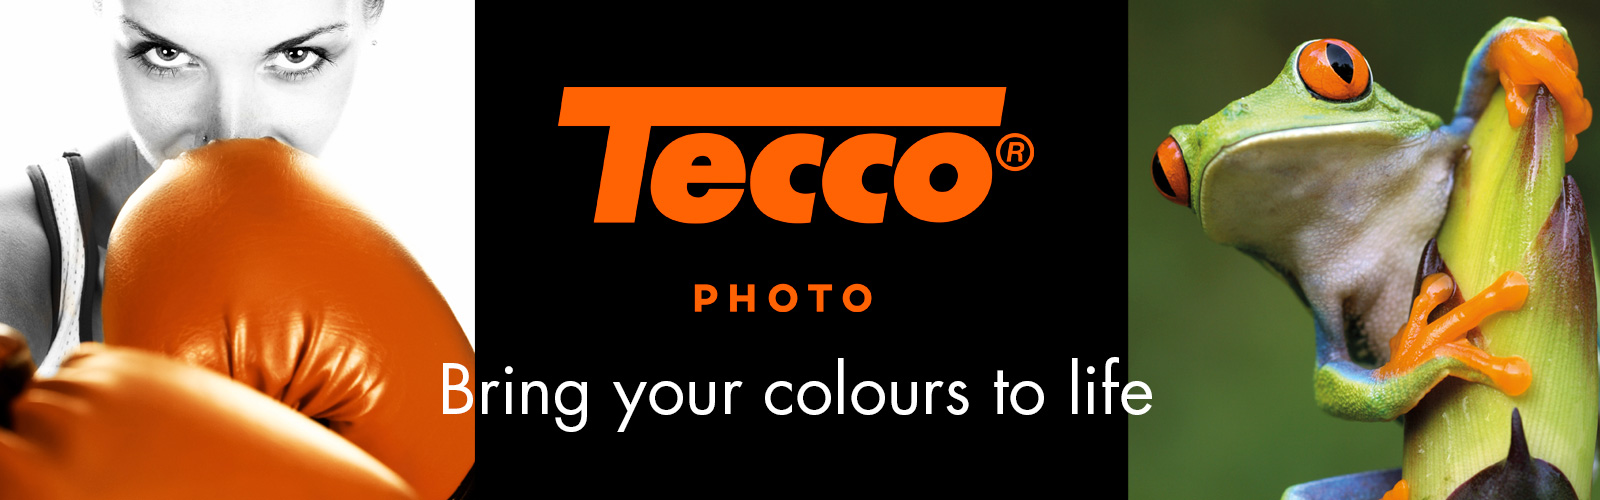 Tecco - bring your colours to life